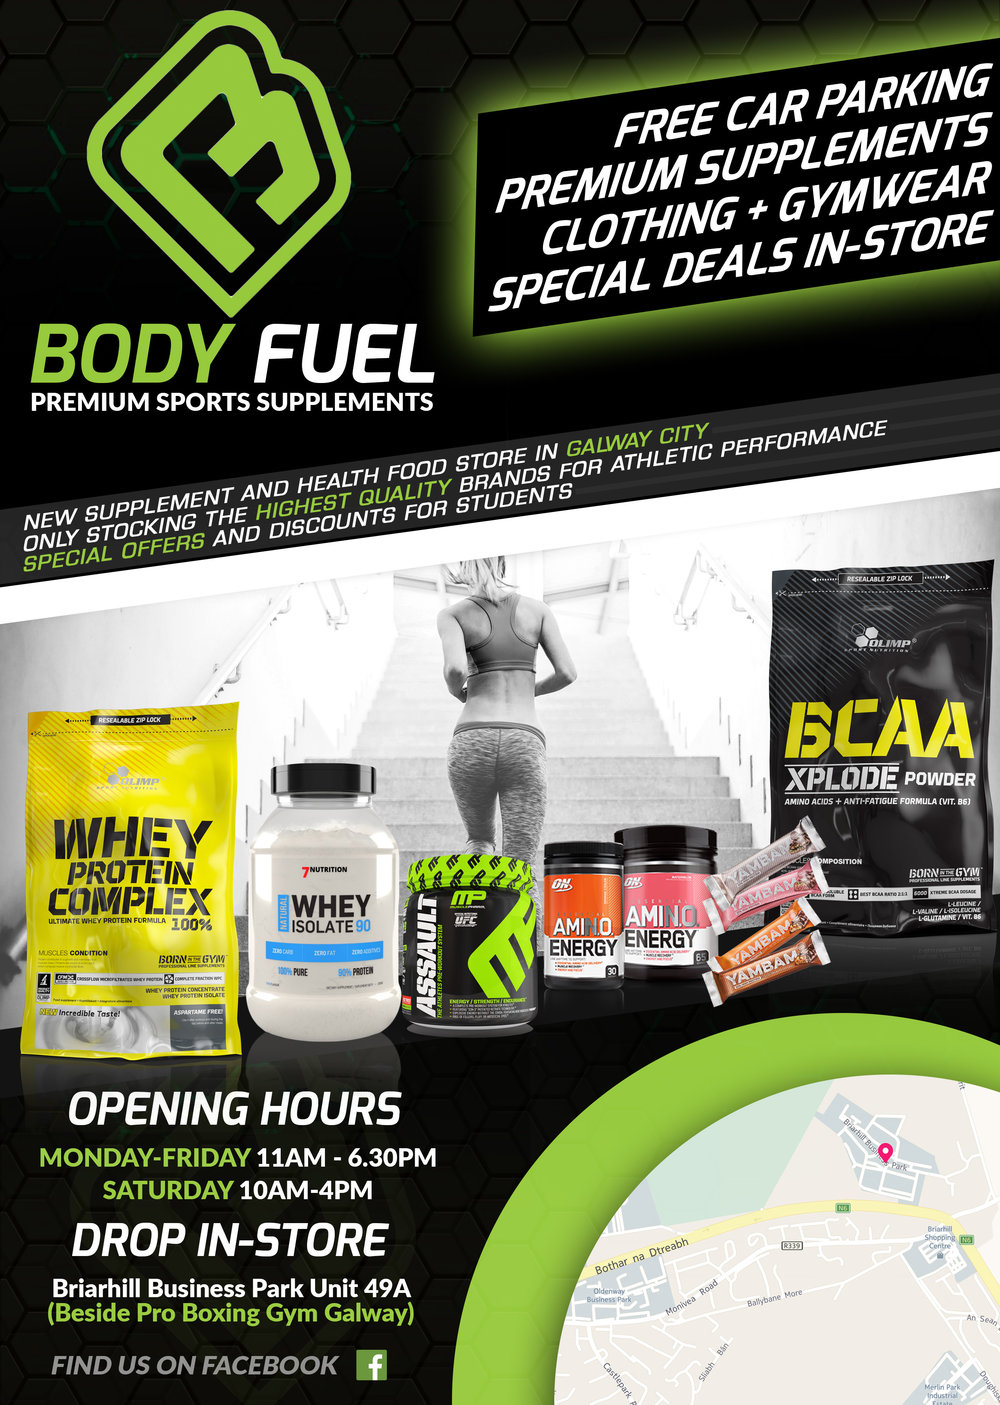 Promotional Leaflet for Sports Supplement Brand and Retail Store